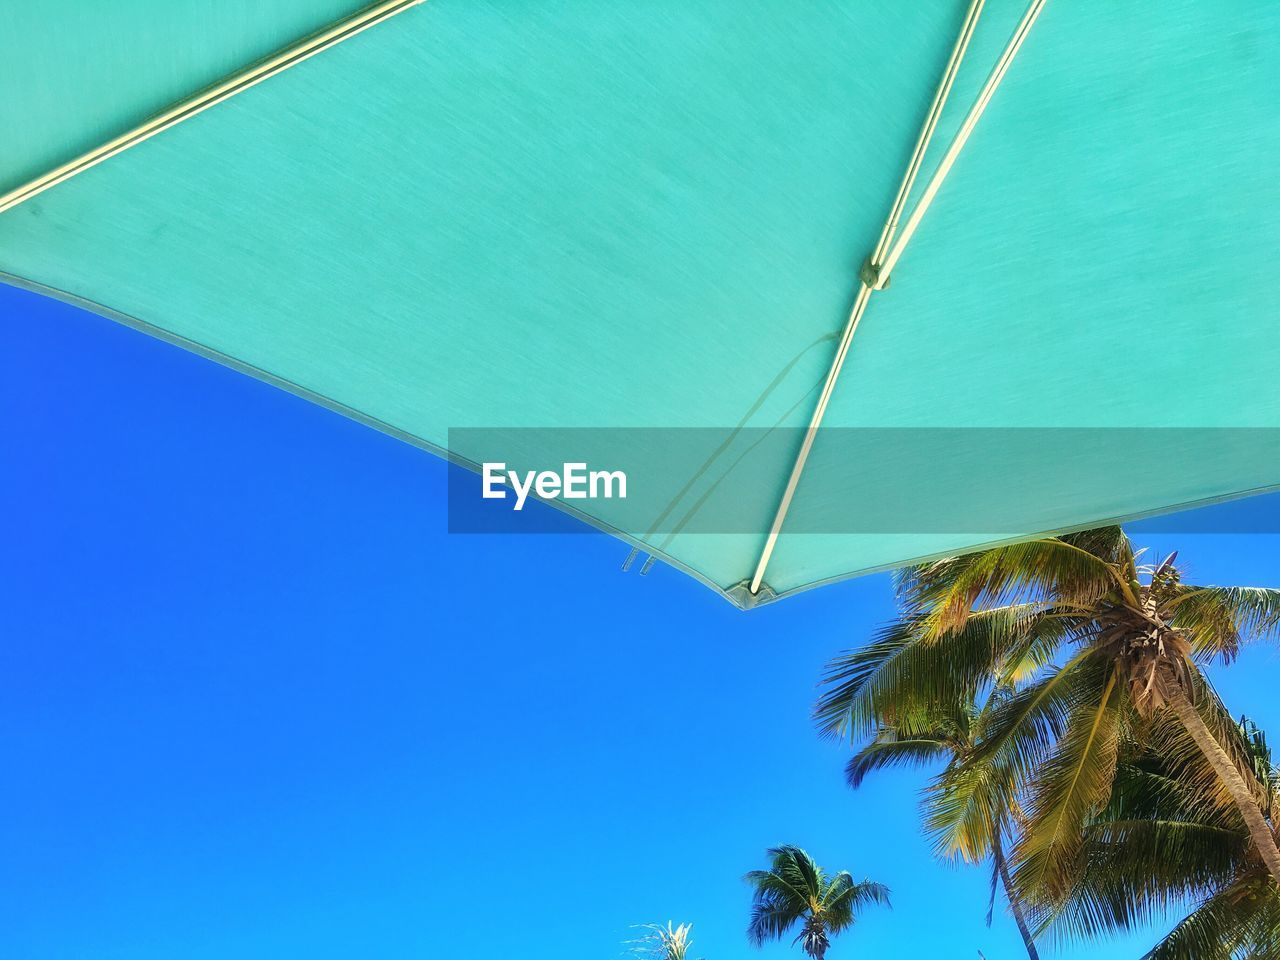 blue, low angle view, clear sky, no people, day, outdoors, palm tree, tree, sky, nature, close-up